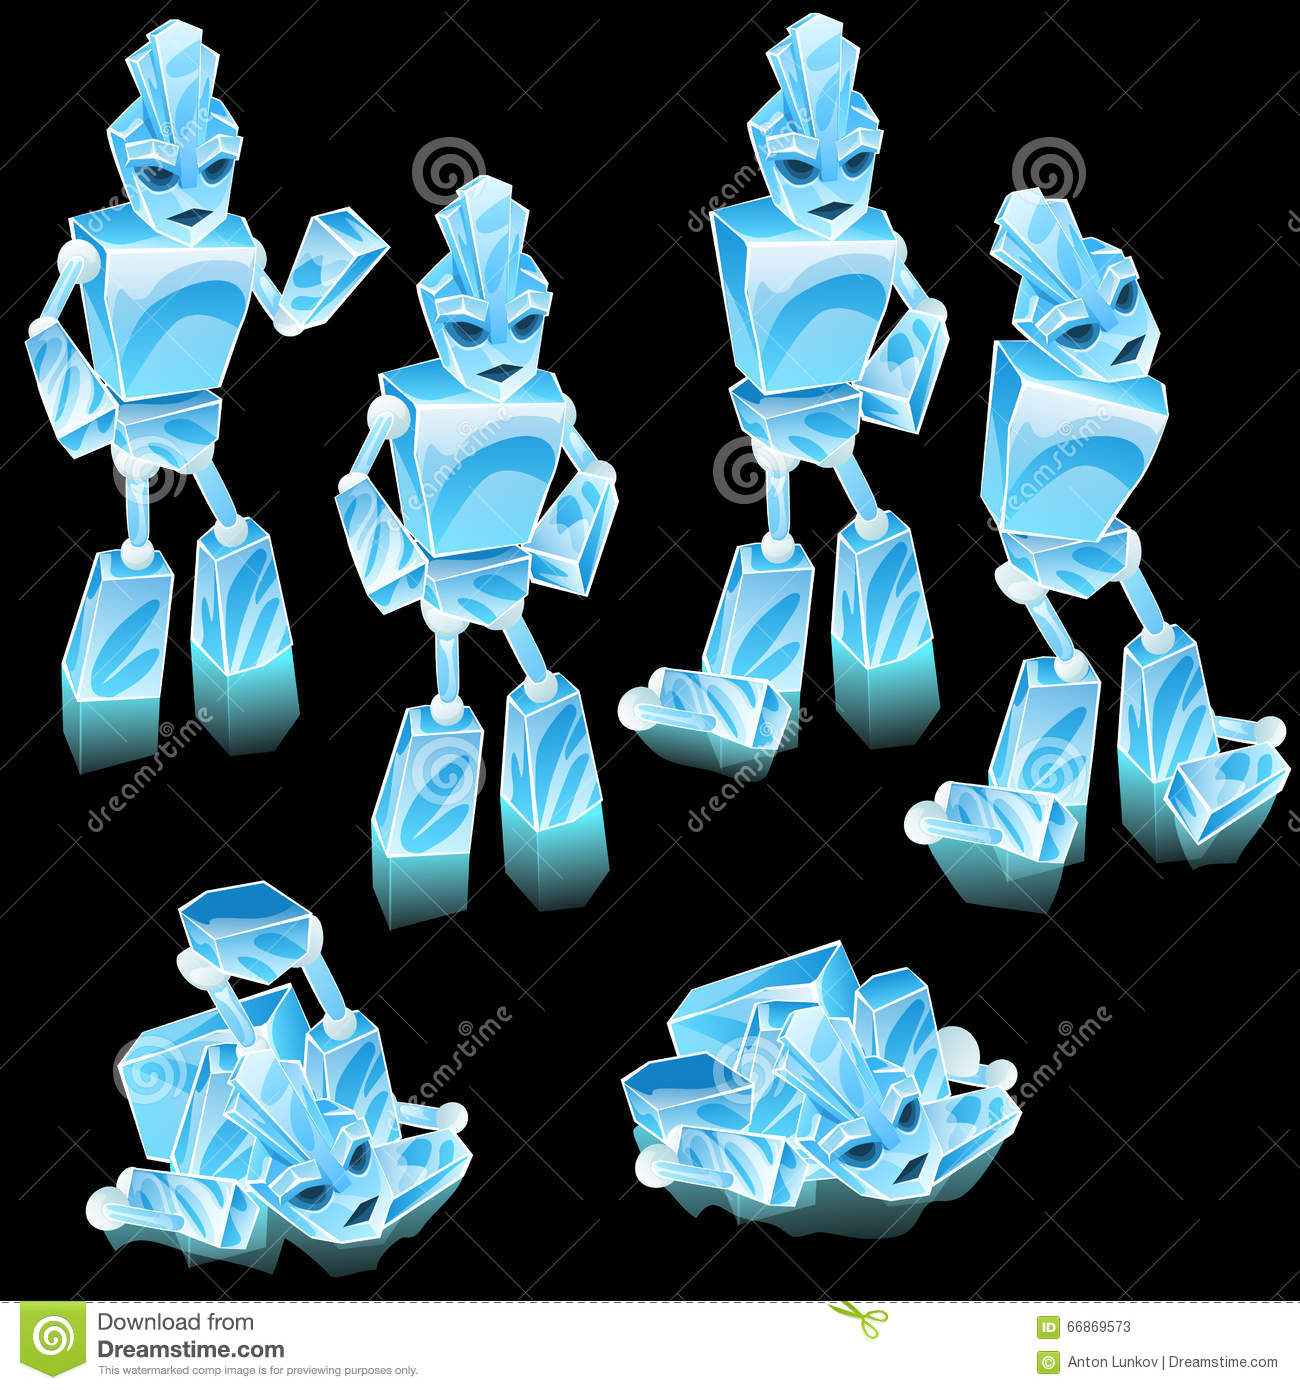 Clipart character in a block of ice clip library download Clipart character in a block of ice - ClipartFest clip library download